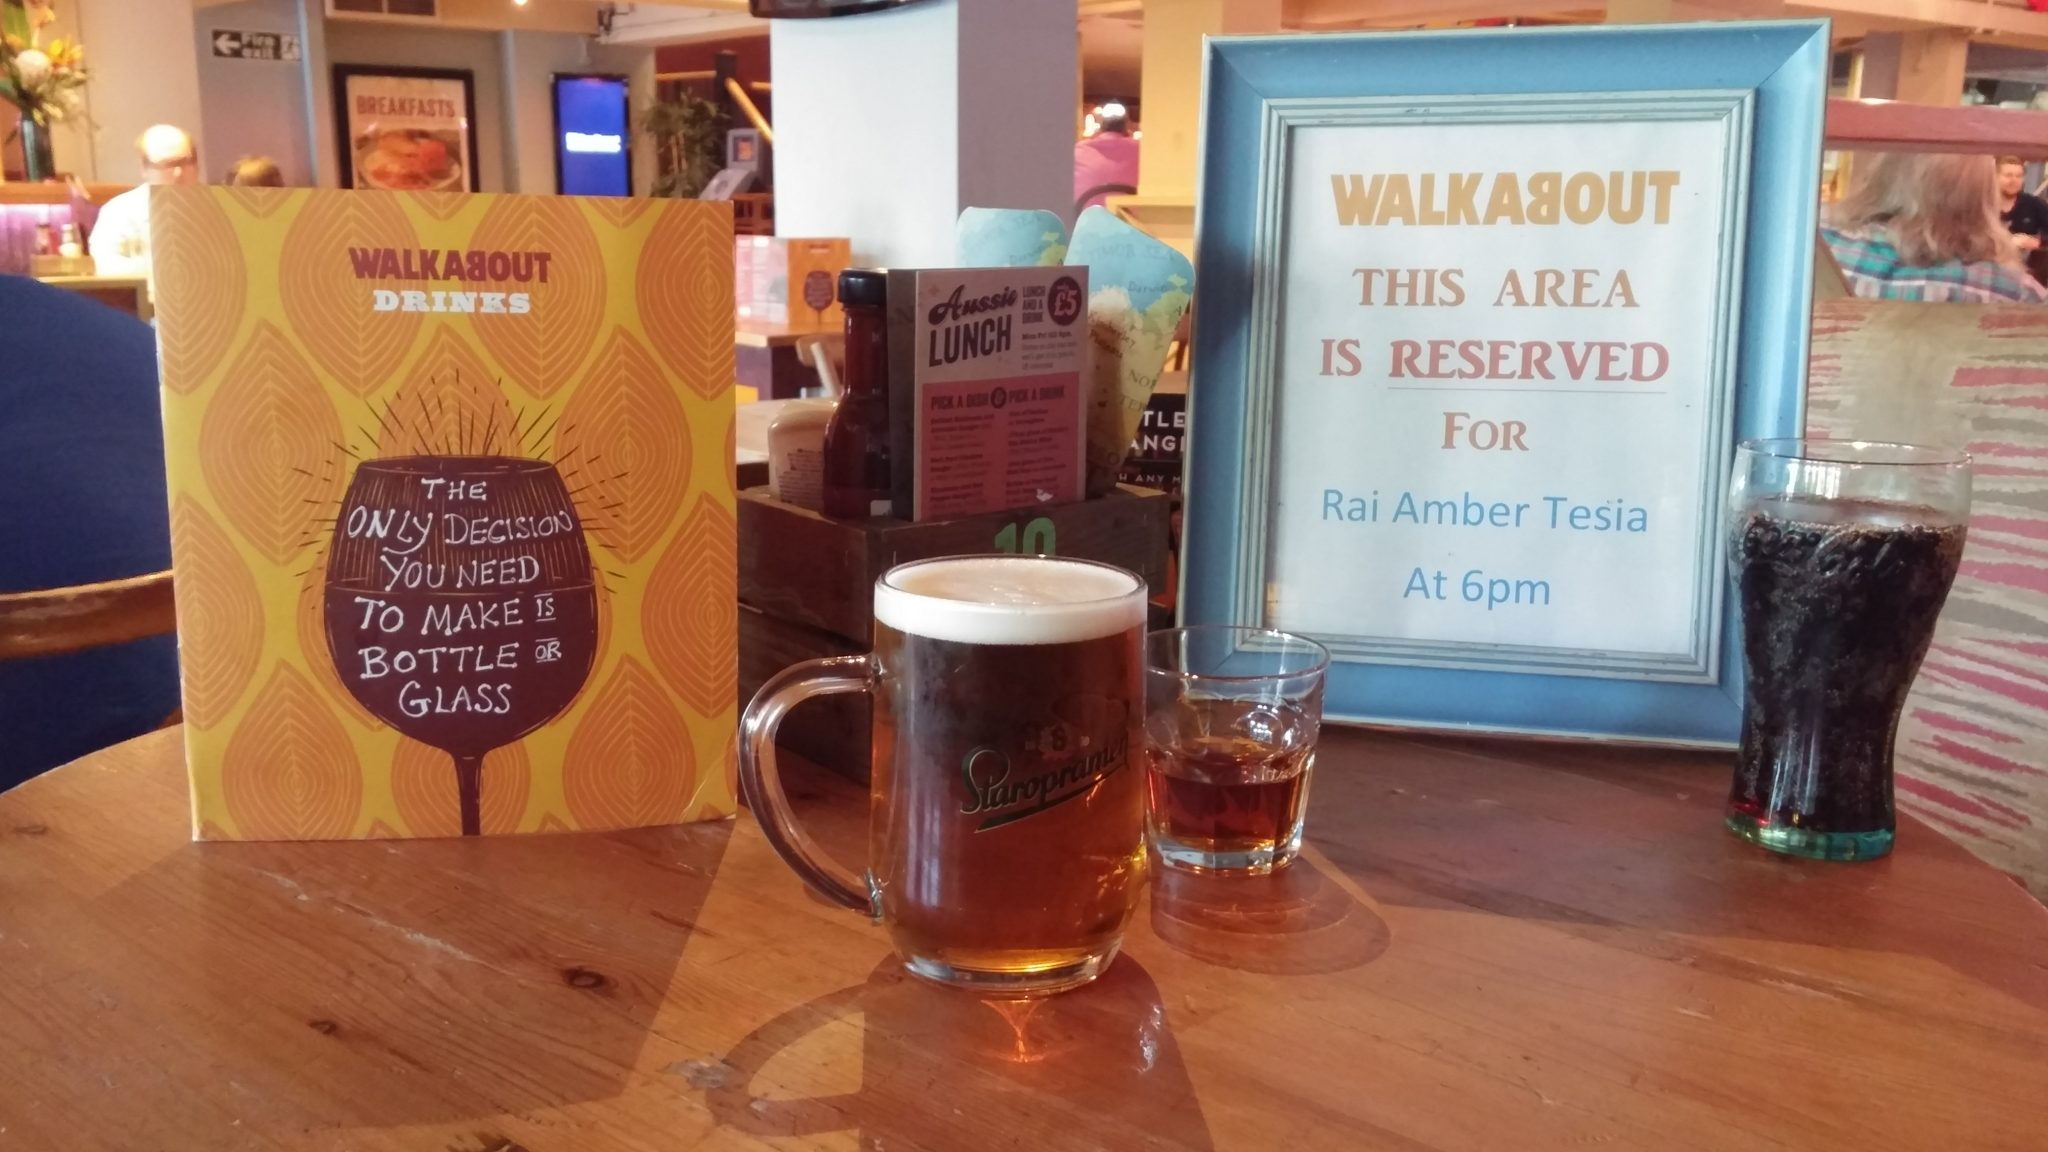 Restaurant Review: Walkabout, Derby